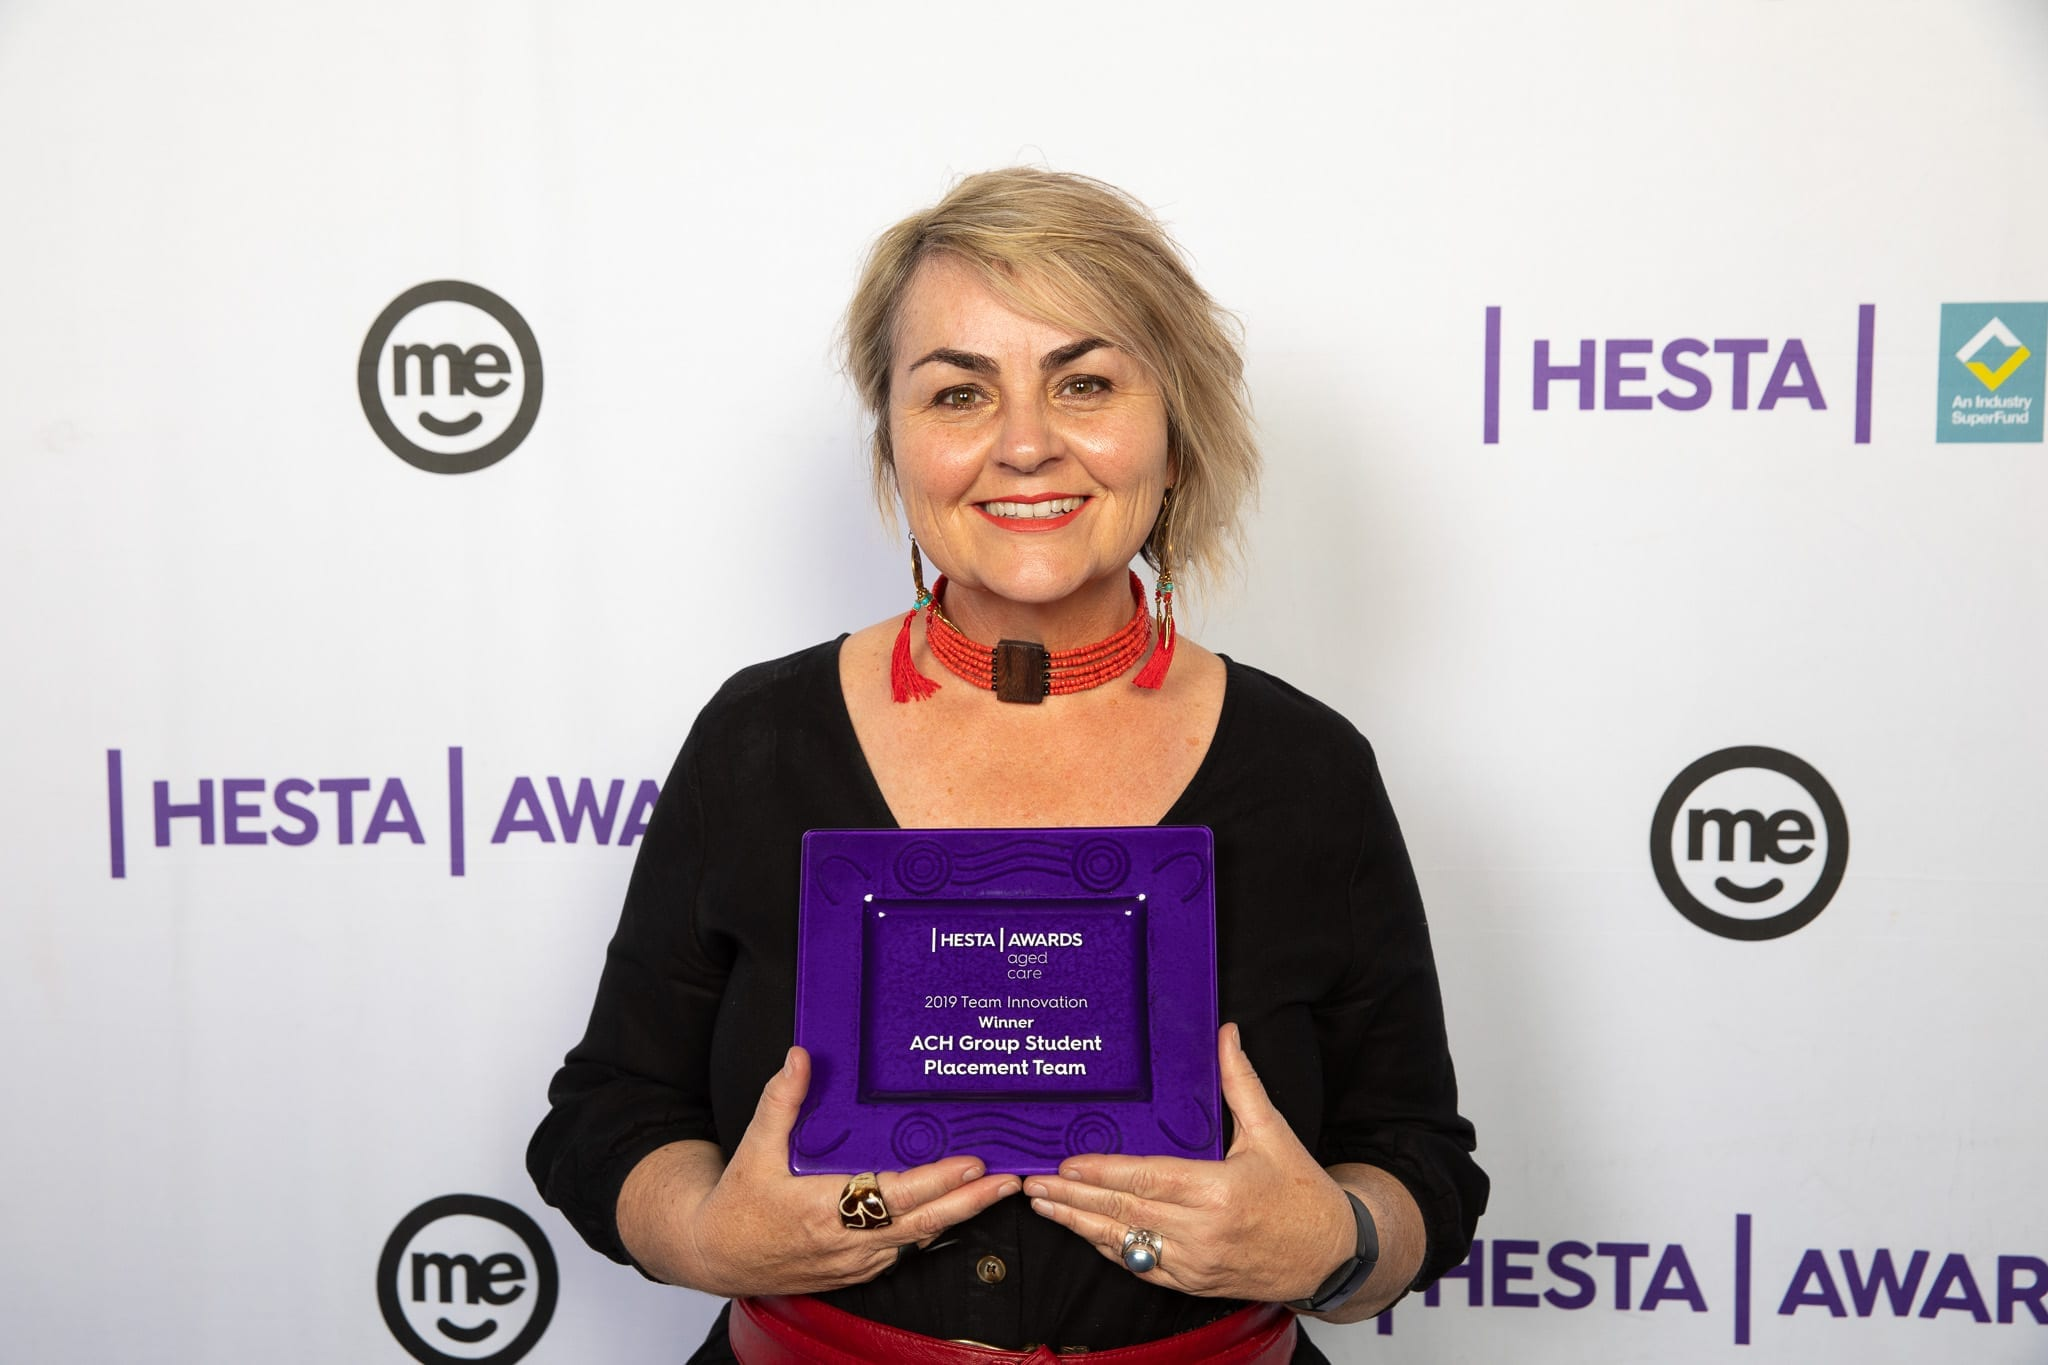 hesta innovation winner